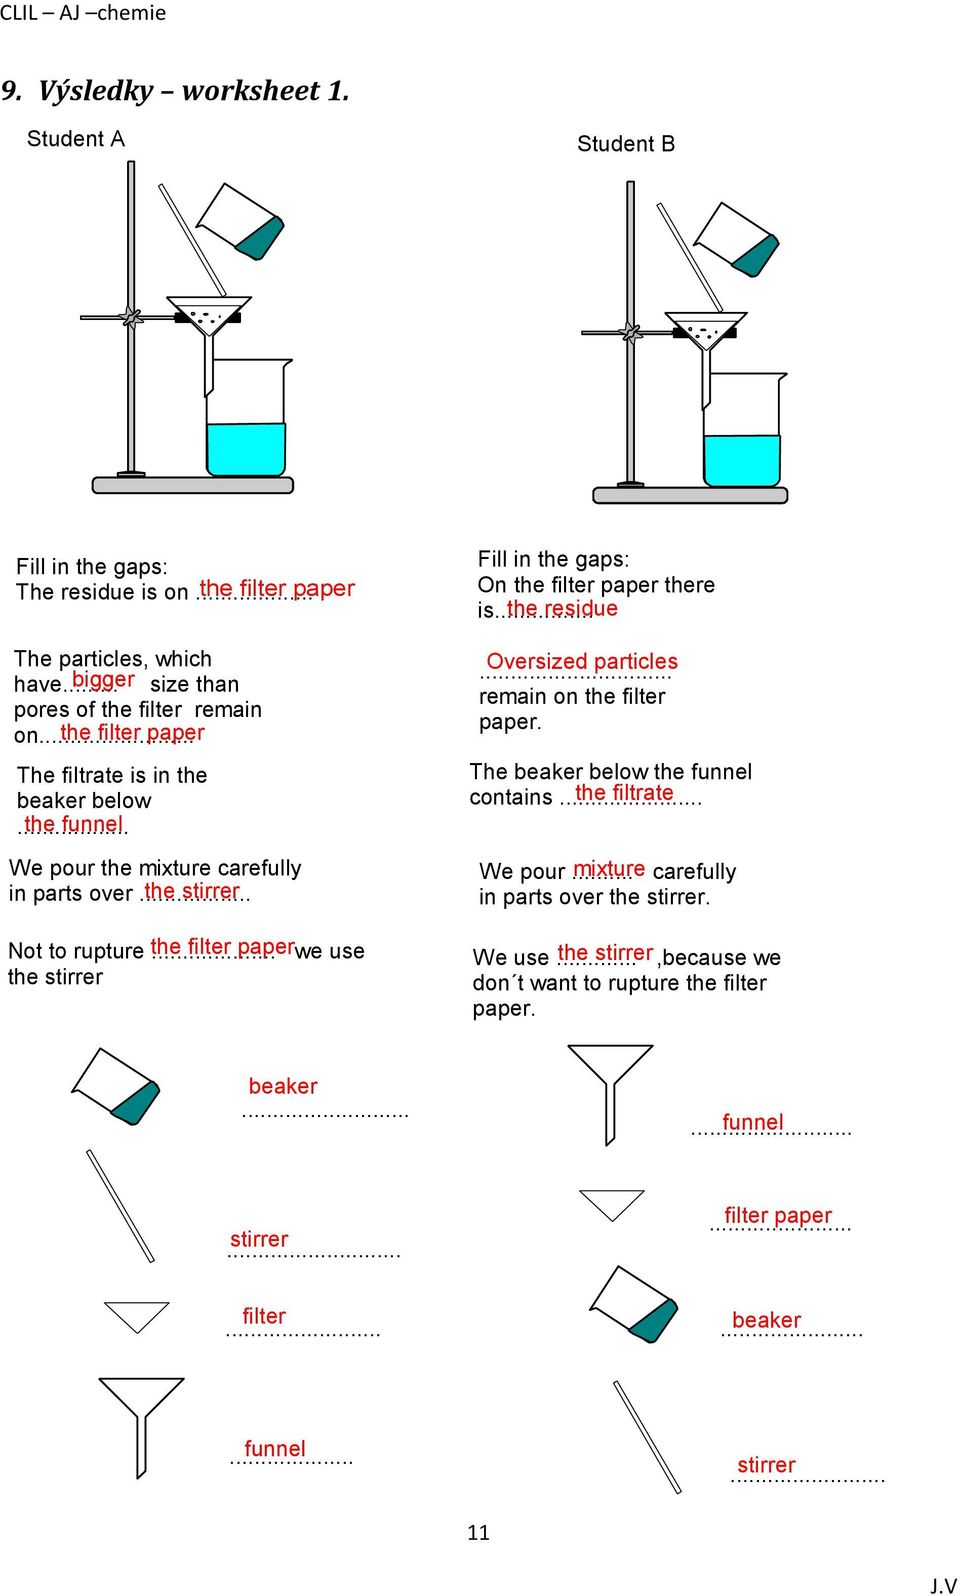 .. filter paperwe use the stirrer Fill in the gaps: On the filter paper there is... the residue... Oversized particles remain on the filter paper. The beaker below the funnel contains.